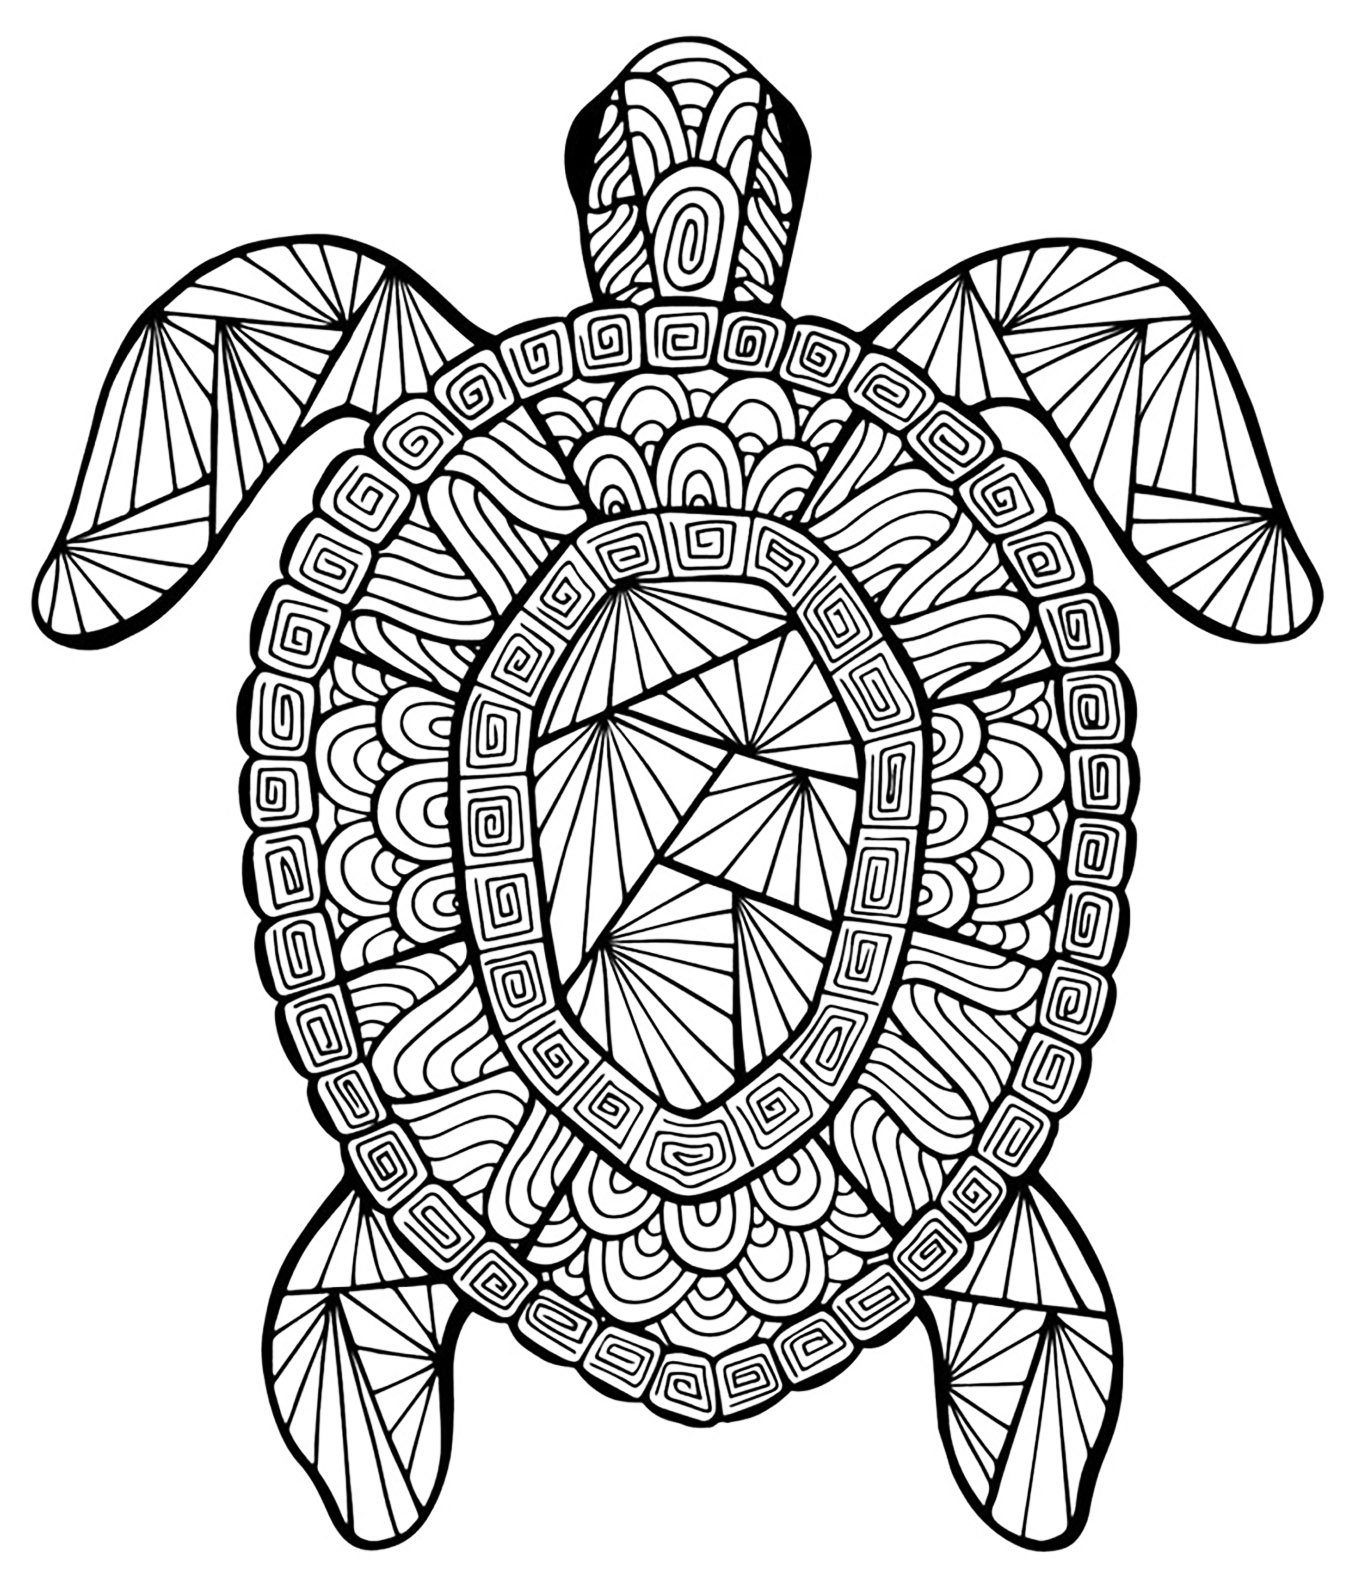 Turtles Free To Color For Children Turtles Kids Coloring Pages